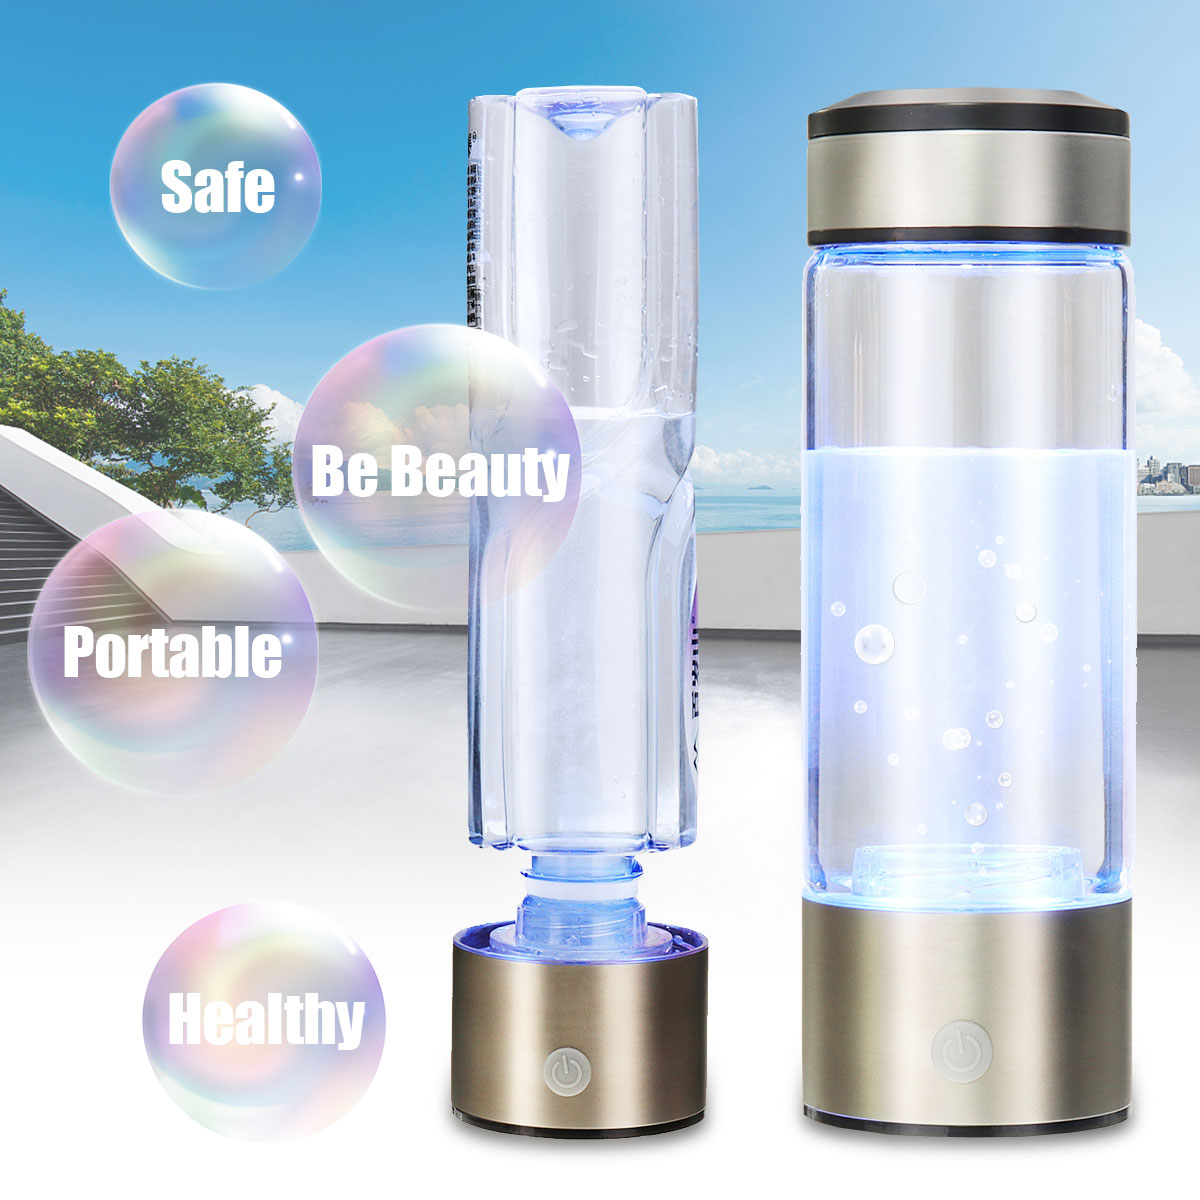 Portable Hydrogen-Rich Water Bottle Alkaline lonizer Hydrogen-Water Generator Maker Rechargeable Water Filter Ionizer Anti-Aging image